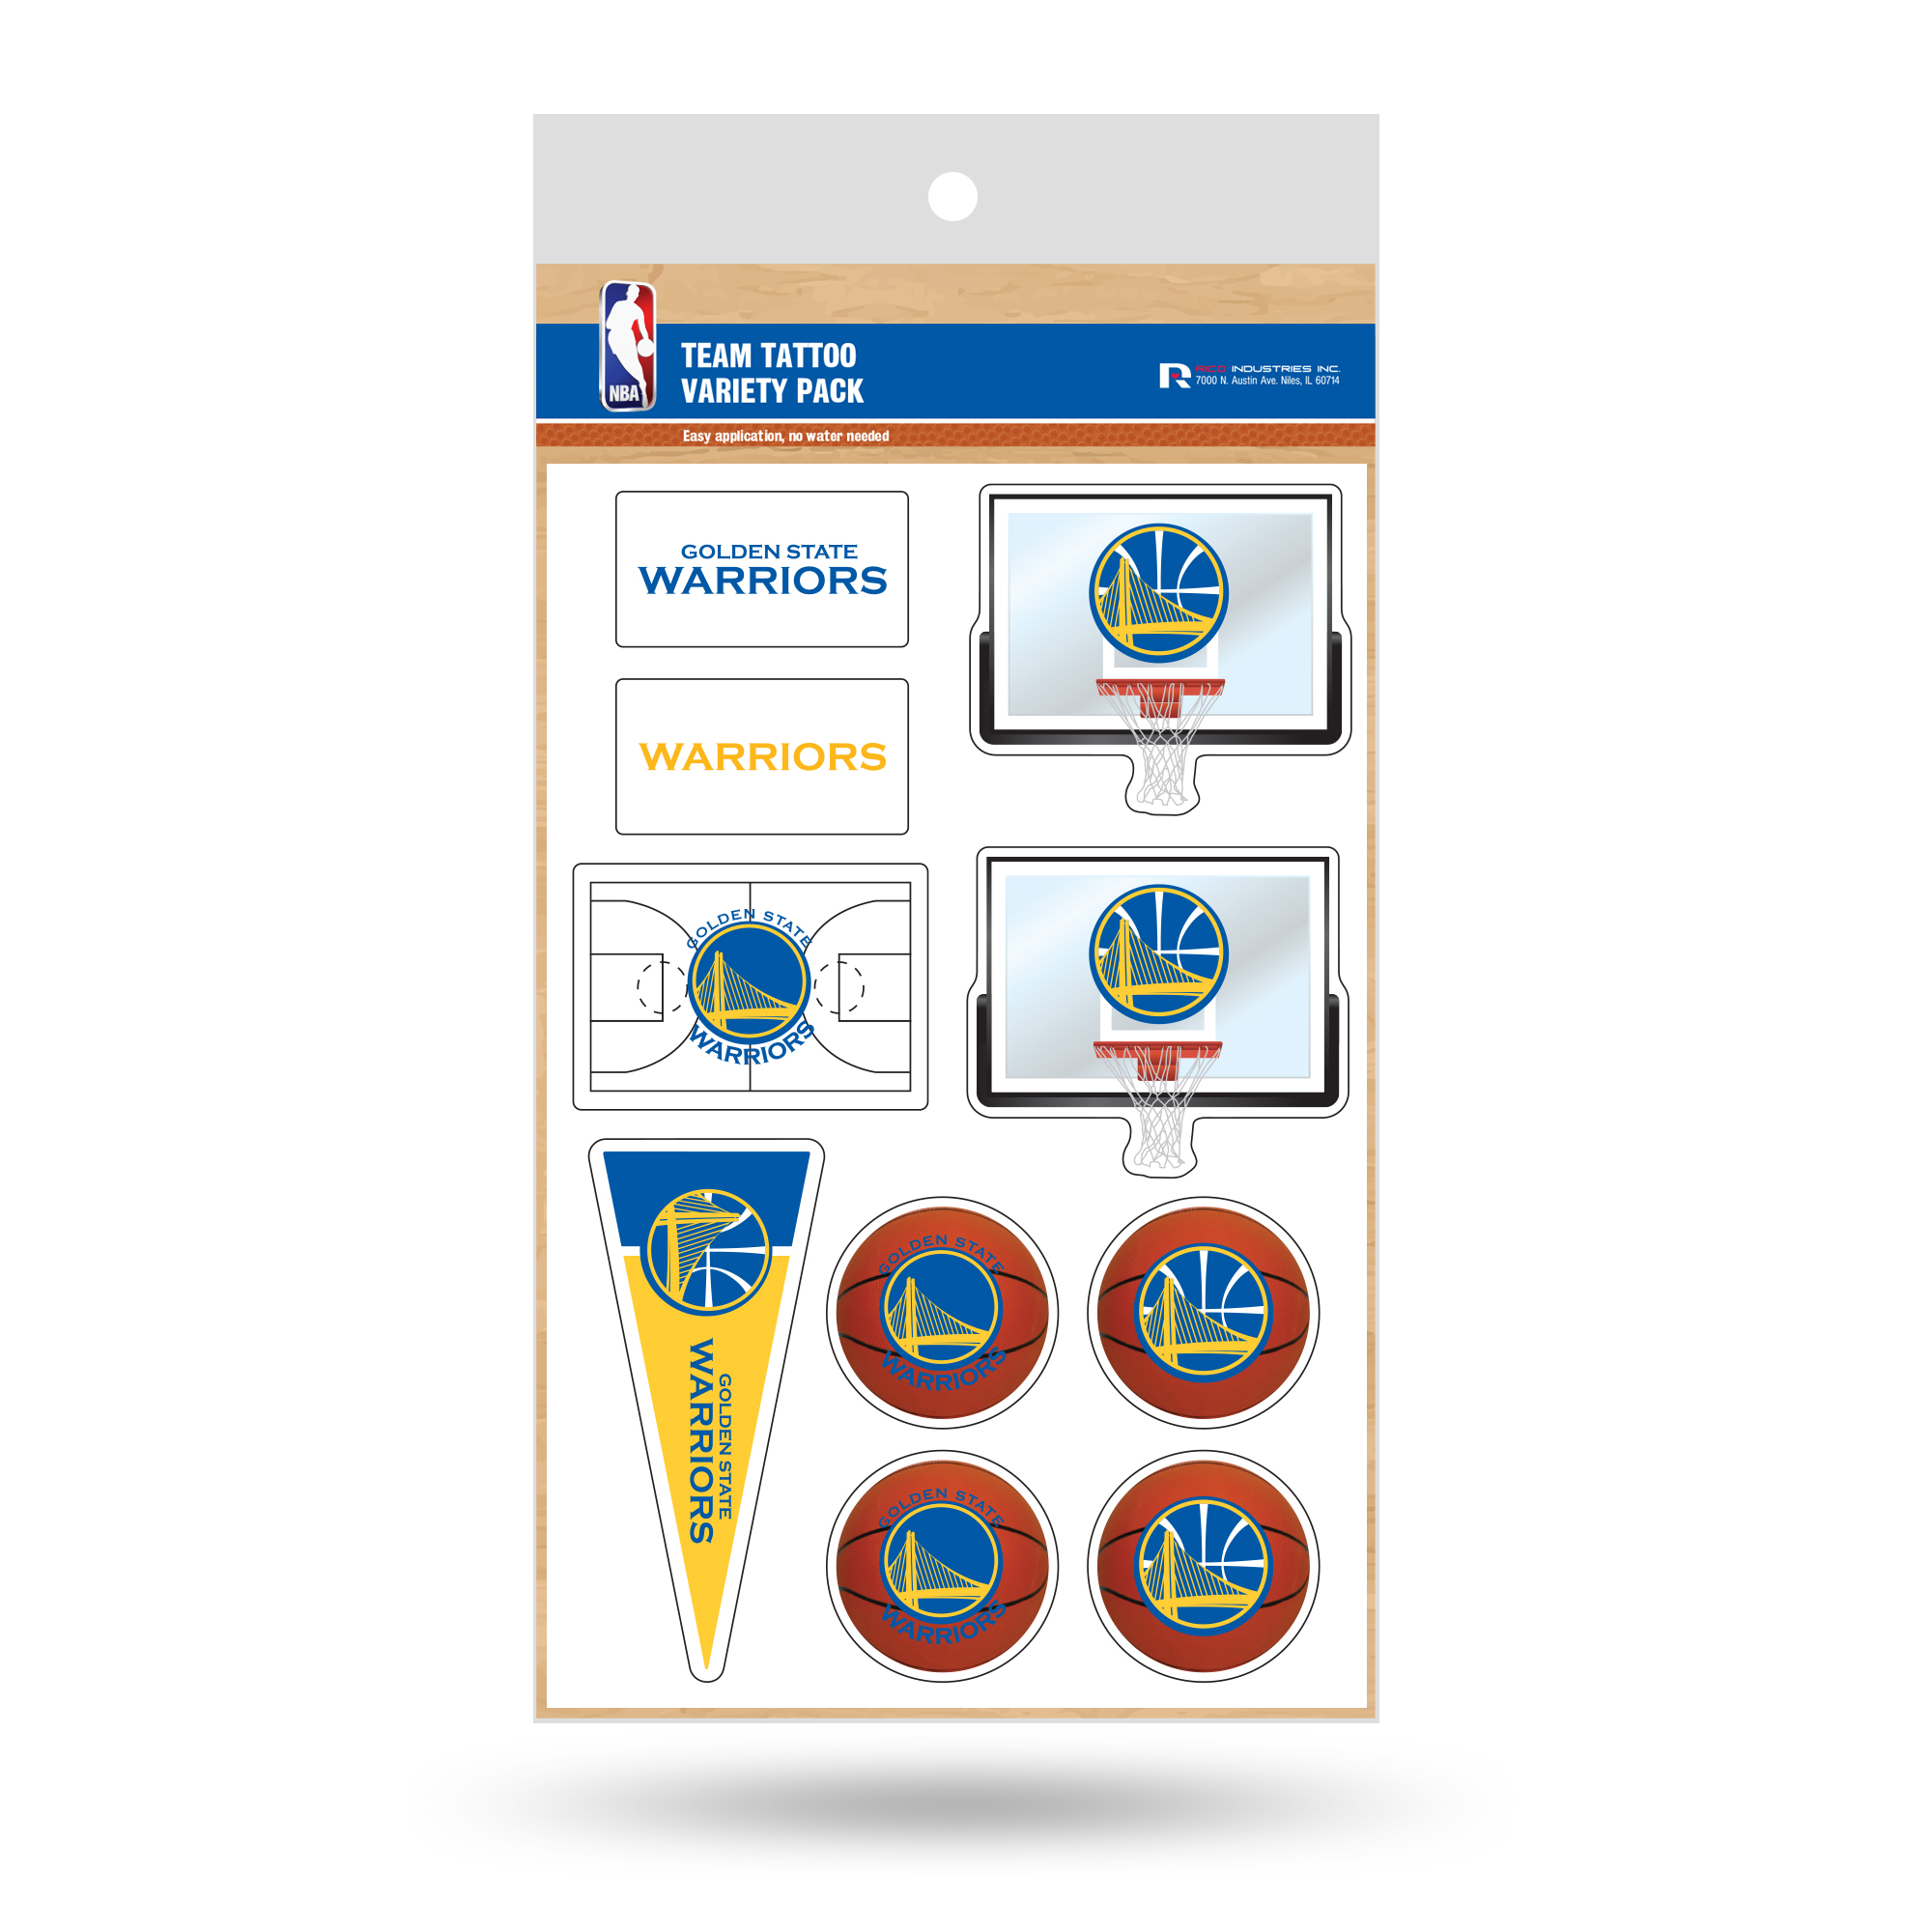 Golden State Warriors Tattoo Variety Pack